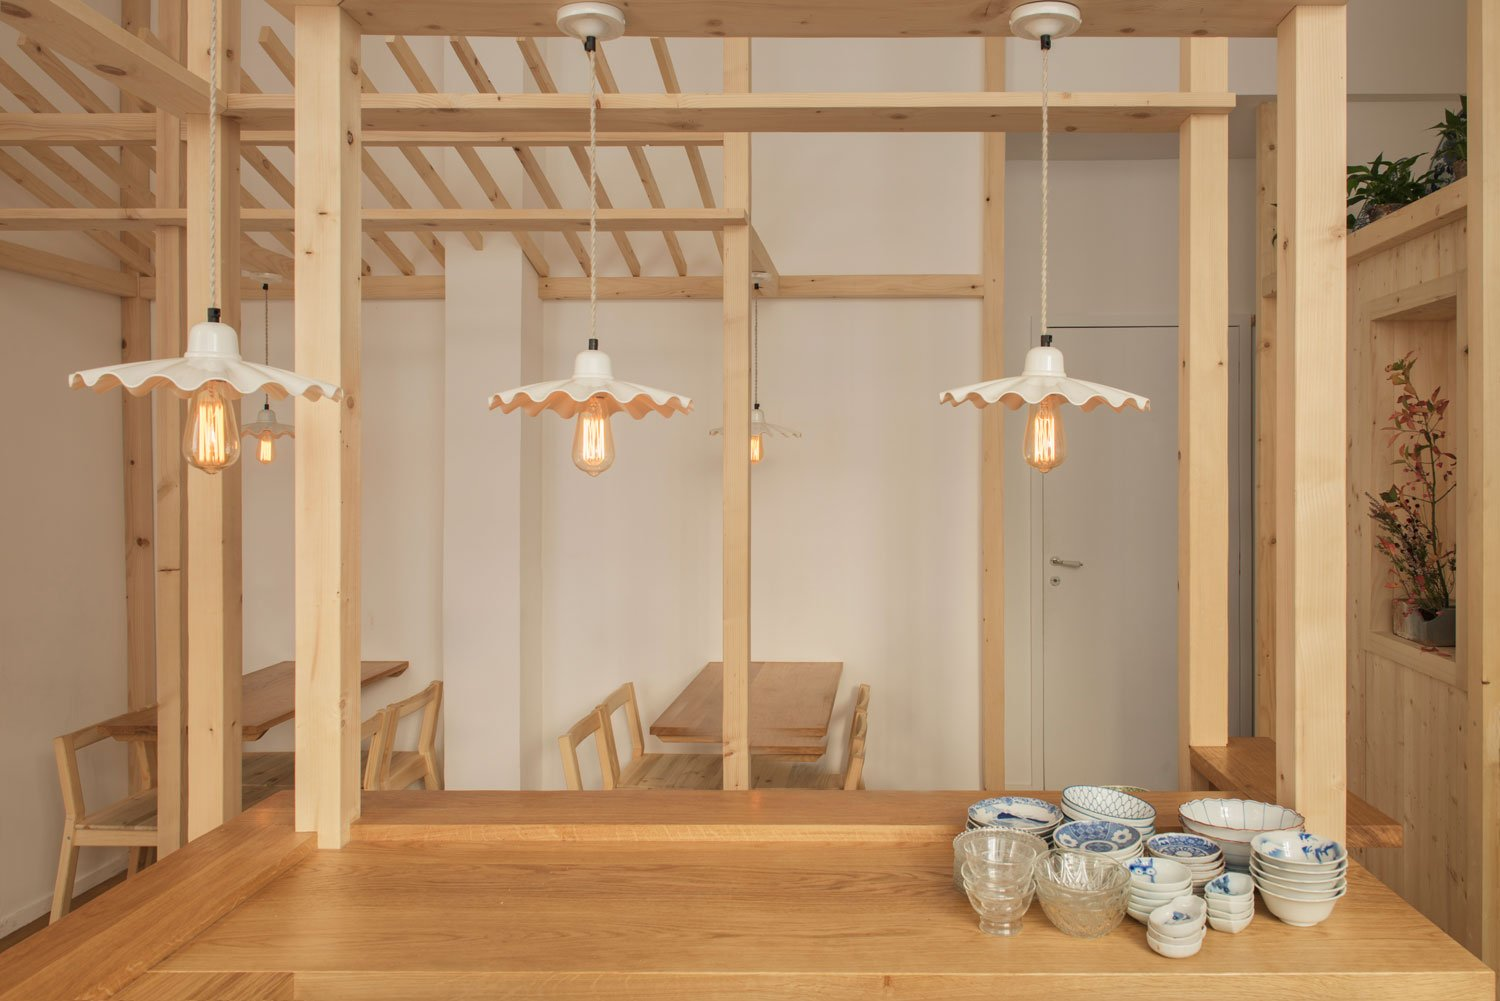 Our Ardle pendant lights enhance the authenticity of this Japanese restaurant